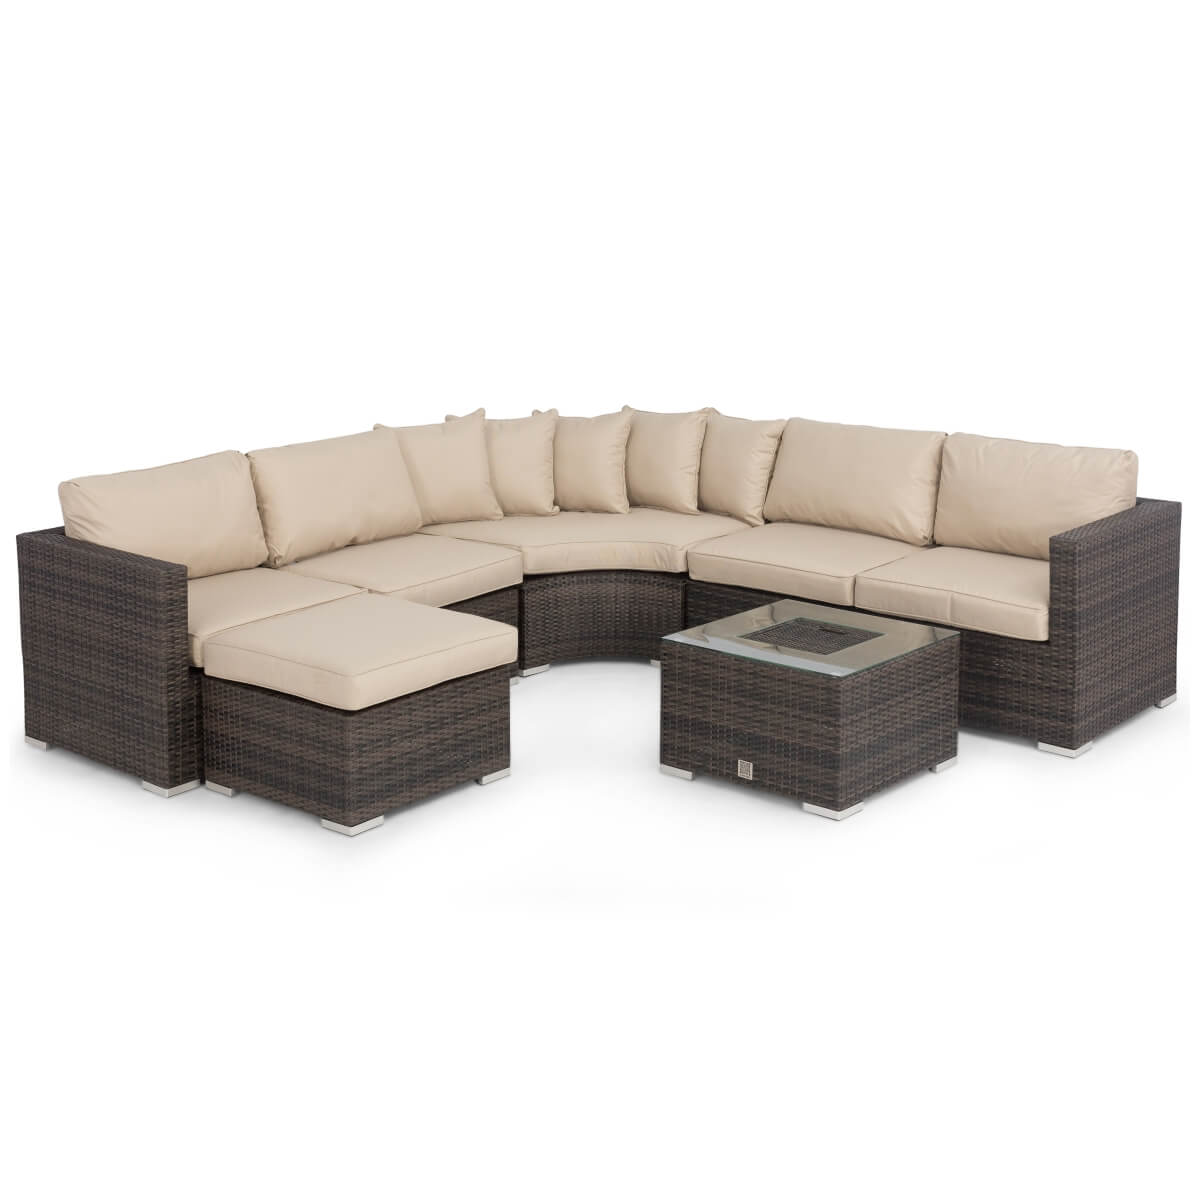 Alexandria Rattan Corner Sofa Reviews: Maze Rattan Barcelona Corner Sofa Set With Ice Bucket FLA